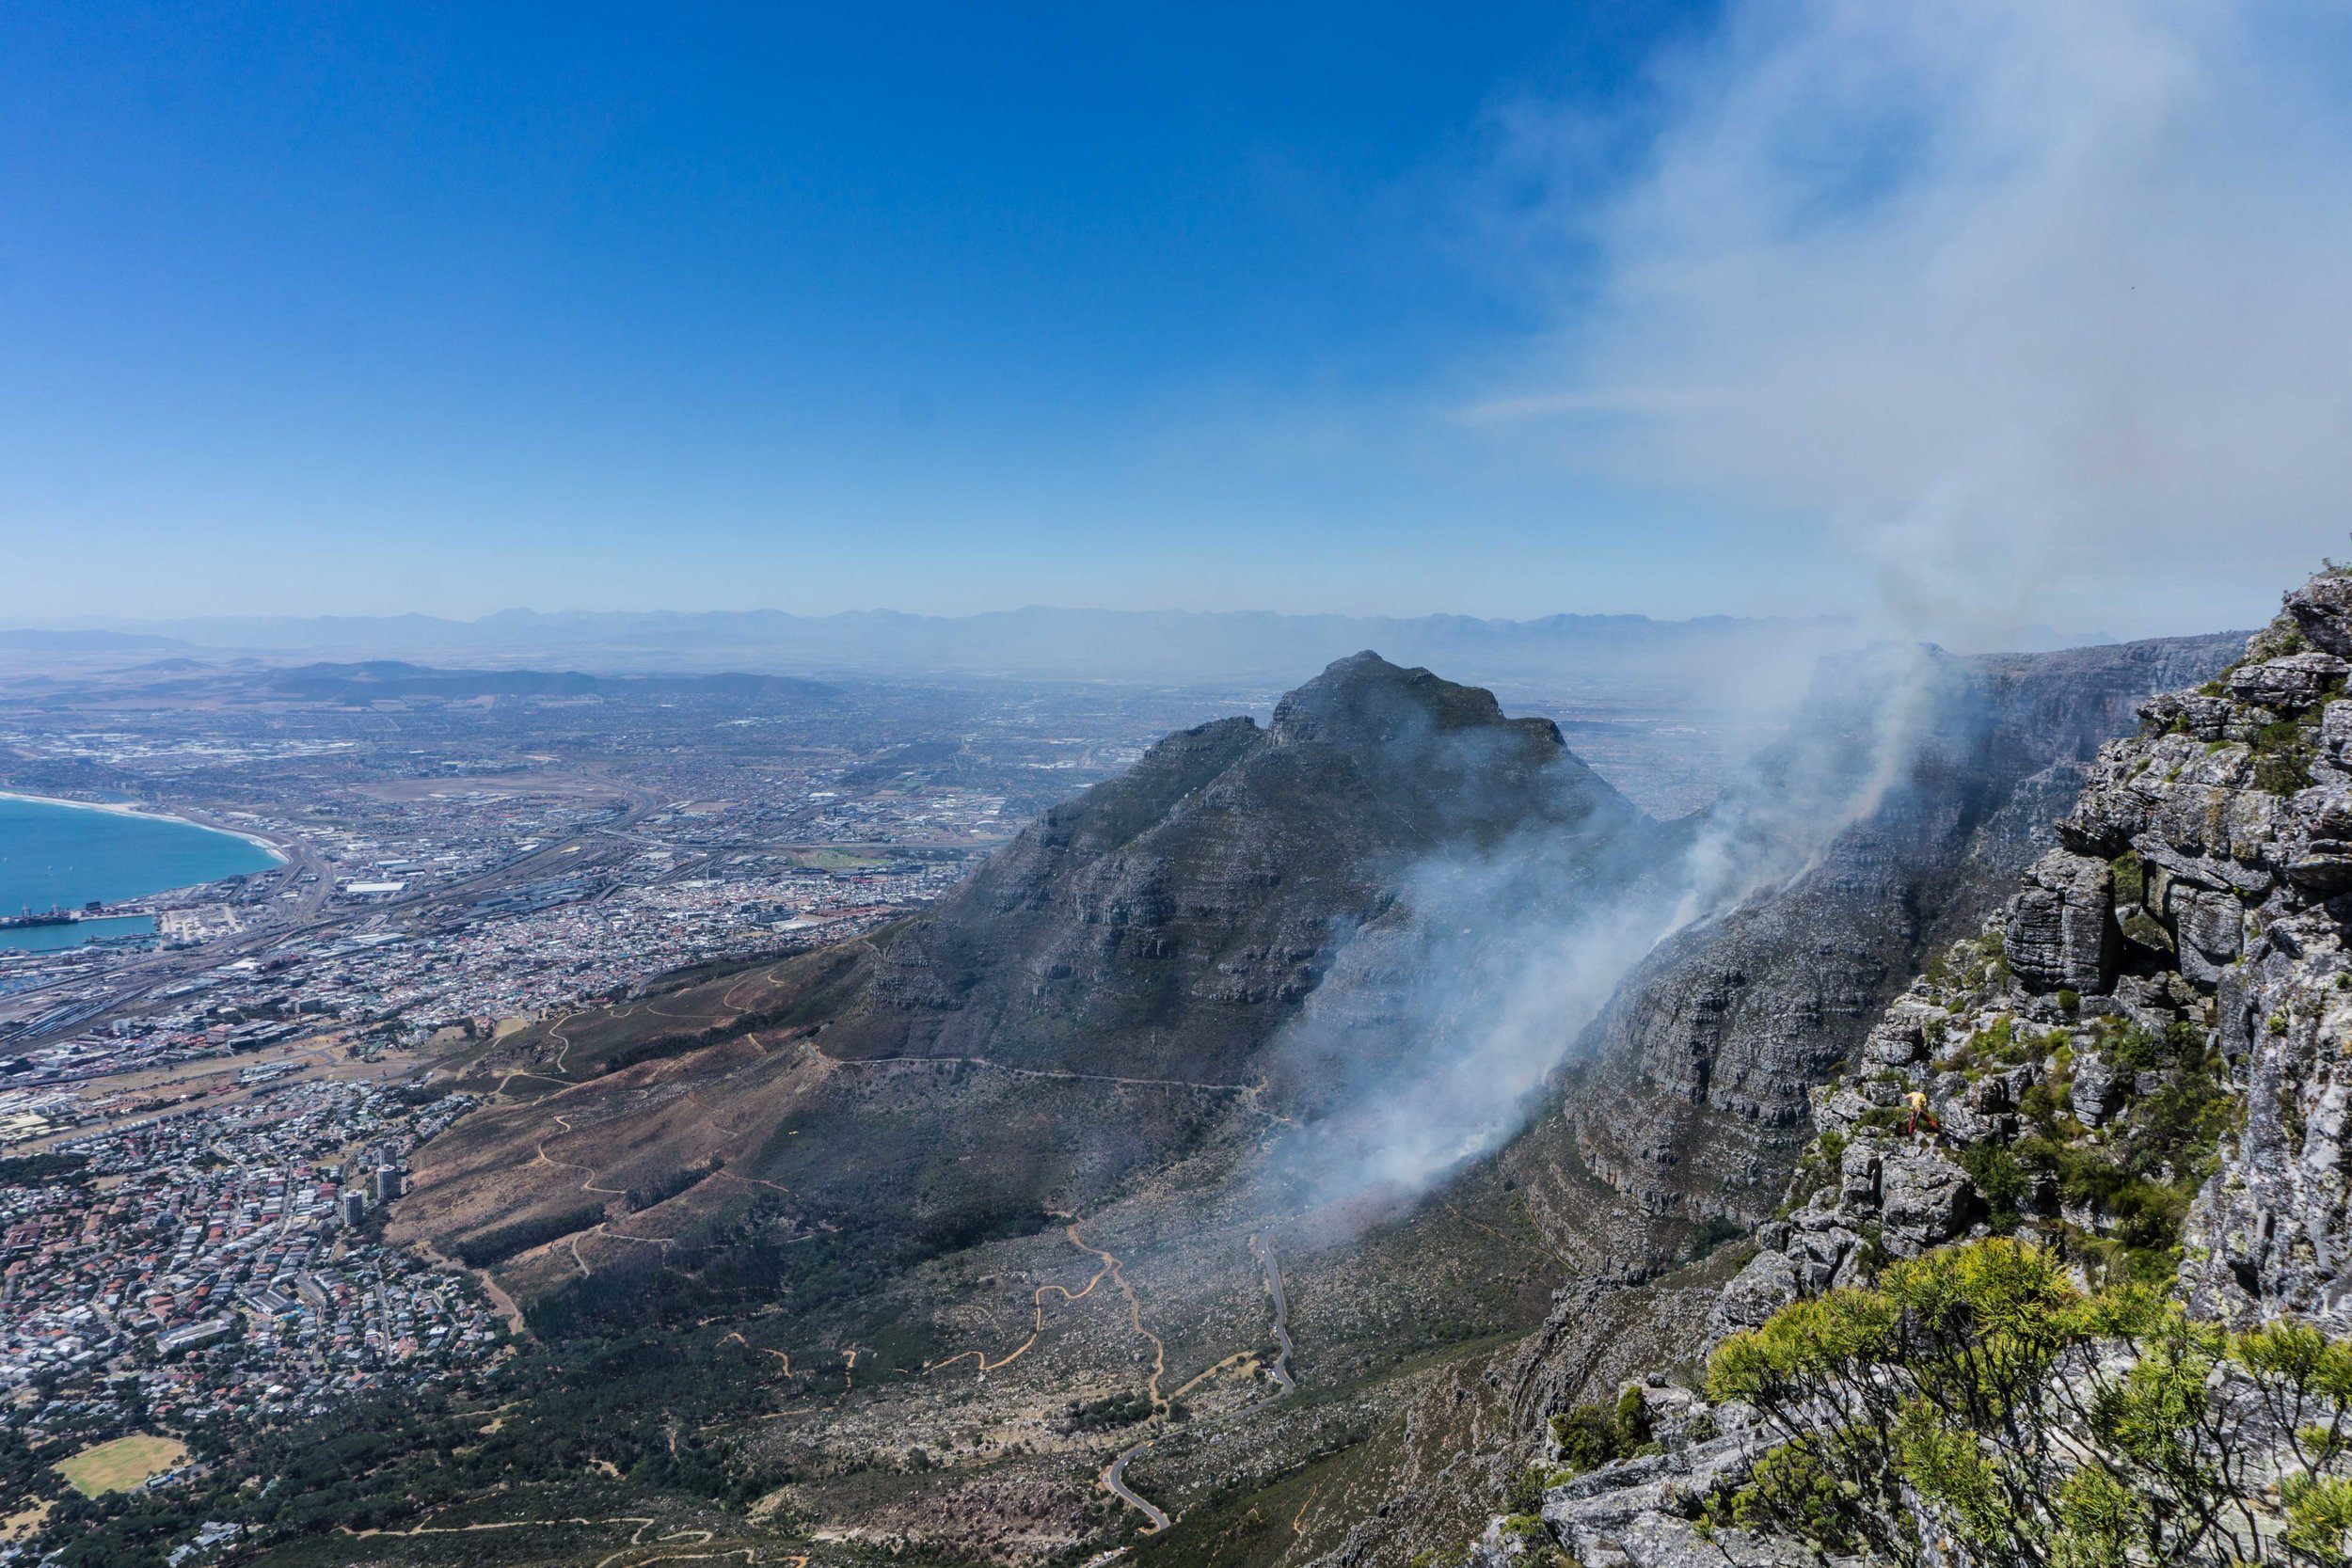 There were huge fires the last couple of weeks